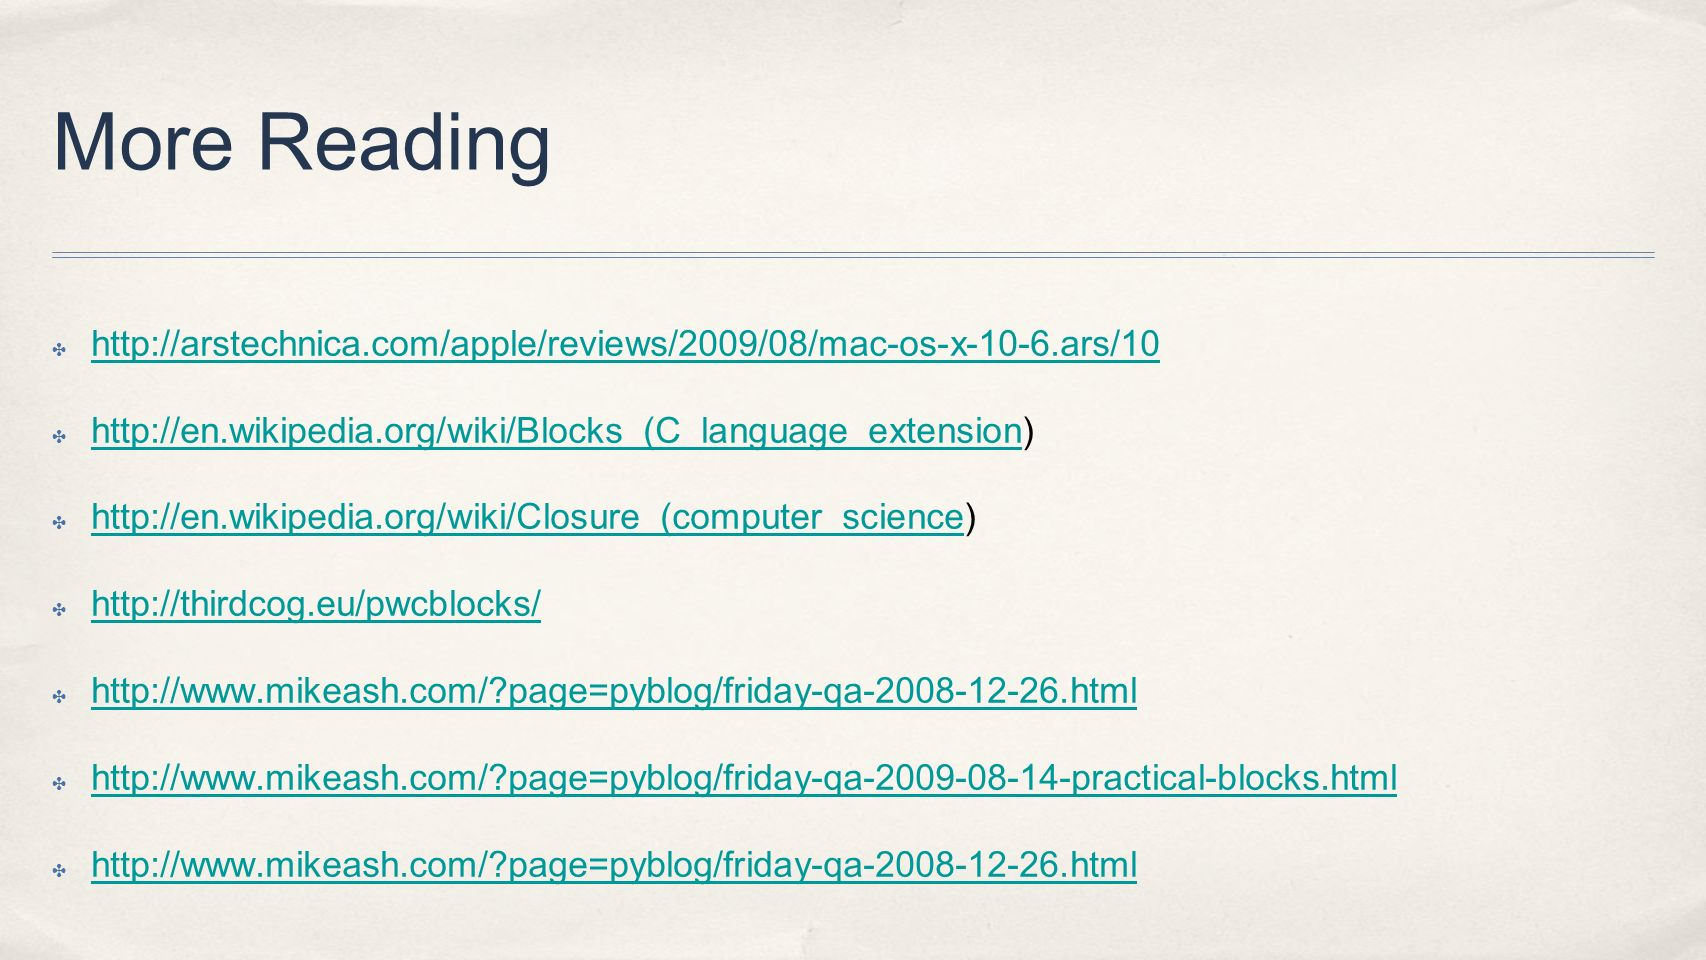 More Reading http://arstechnica.com/apple/reviews/2009/08/mac-os-x-10-6.ars/10 http://en.wikipedia.org/wiki/Blocks_(C_language_extension) http://en.wikipedia.org/wiki/Blocks_(C_language_extension http://en.wikipedia.org/wiki/Closure_(computer_science) http://en.wikipedia.org/wiki/Closure_(computer_science http://thirdcog.eu/pwcblocks/ http://www.mikeash.com/?page=pyblog/friday-qa-2008-12-26.html http://www.mikeash.com/?page=pyblog/friday-qa-2009-08-14-practical-blocks.html http://www.mikeash.com/?page=pyblog/friday-qa-2008-12-26.html